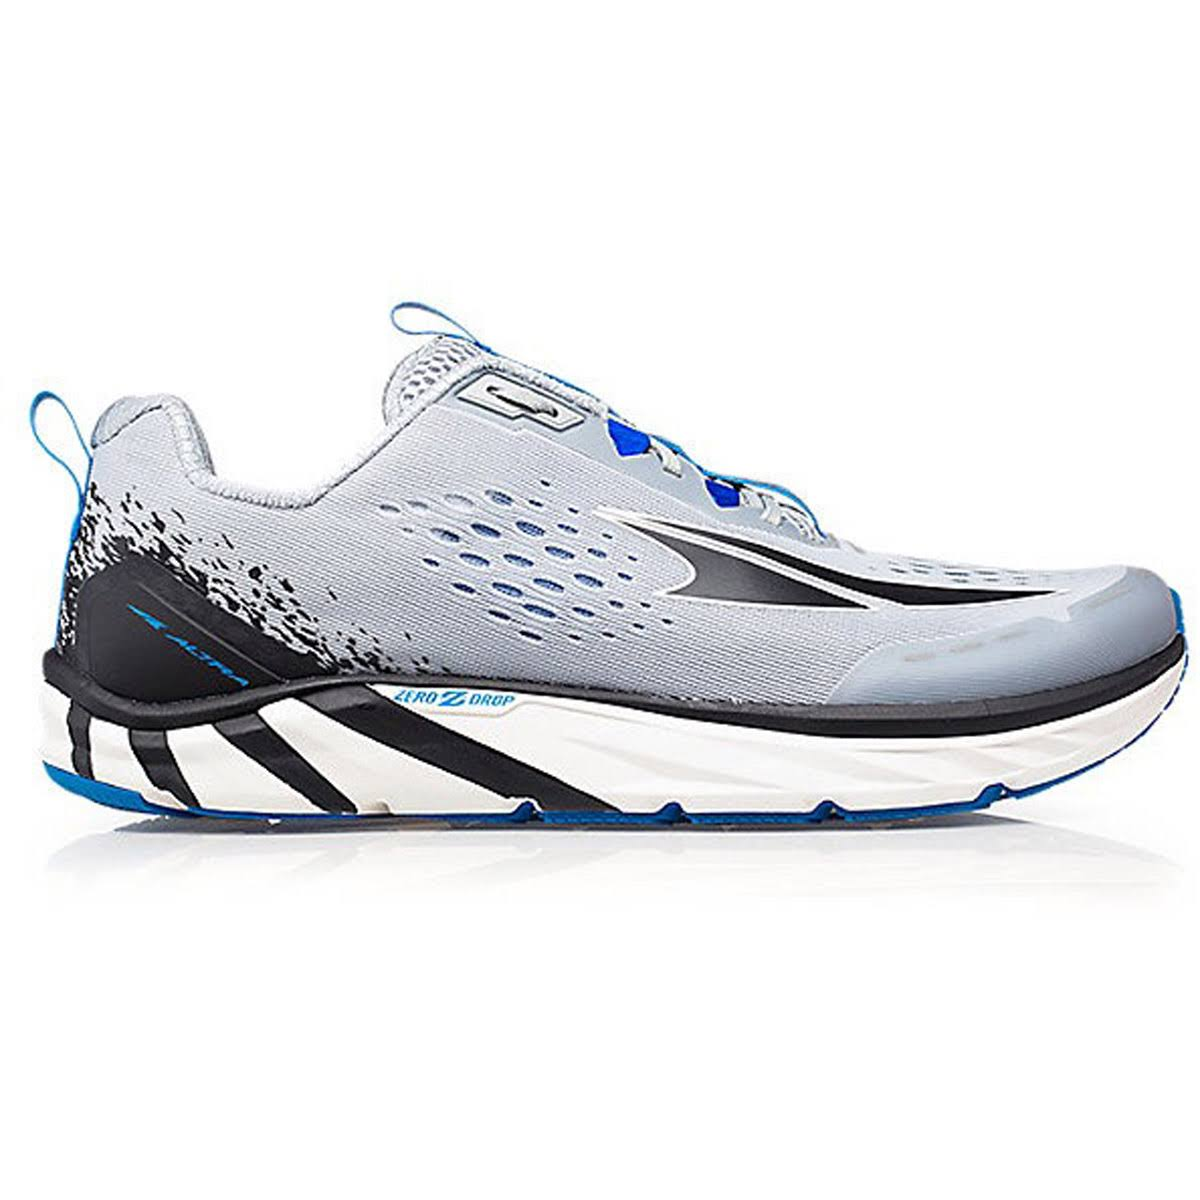 Altra Torin 4 Running Shoe Men's, Gray/Blue, 13